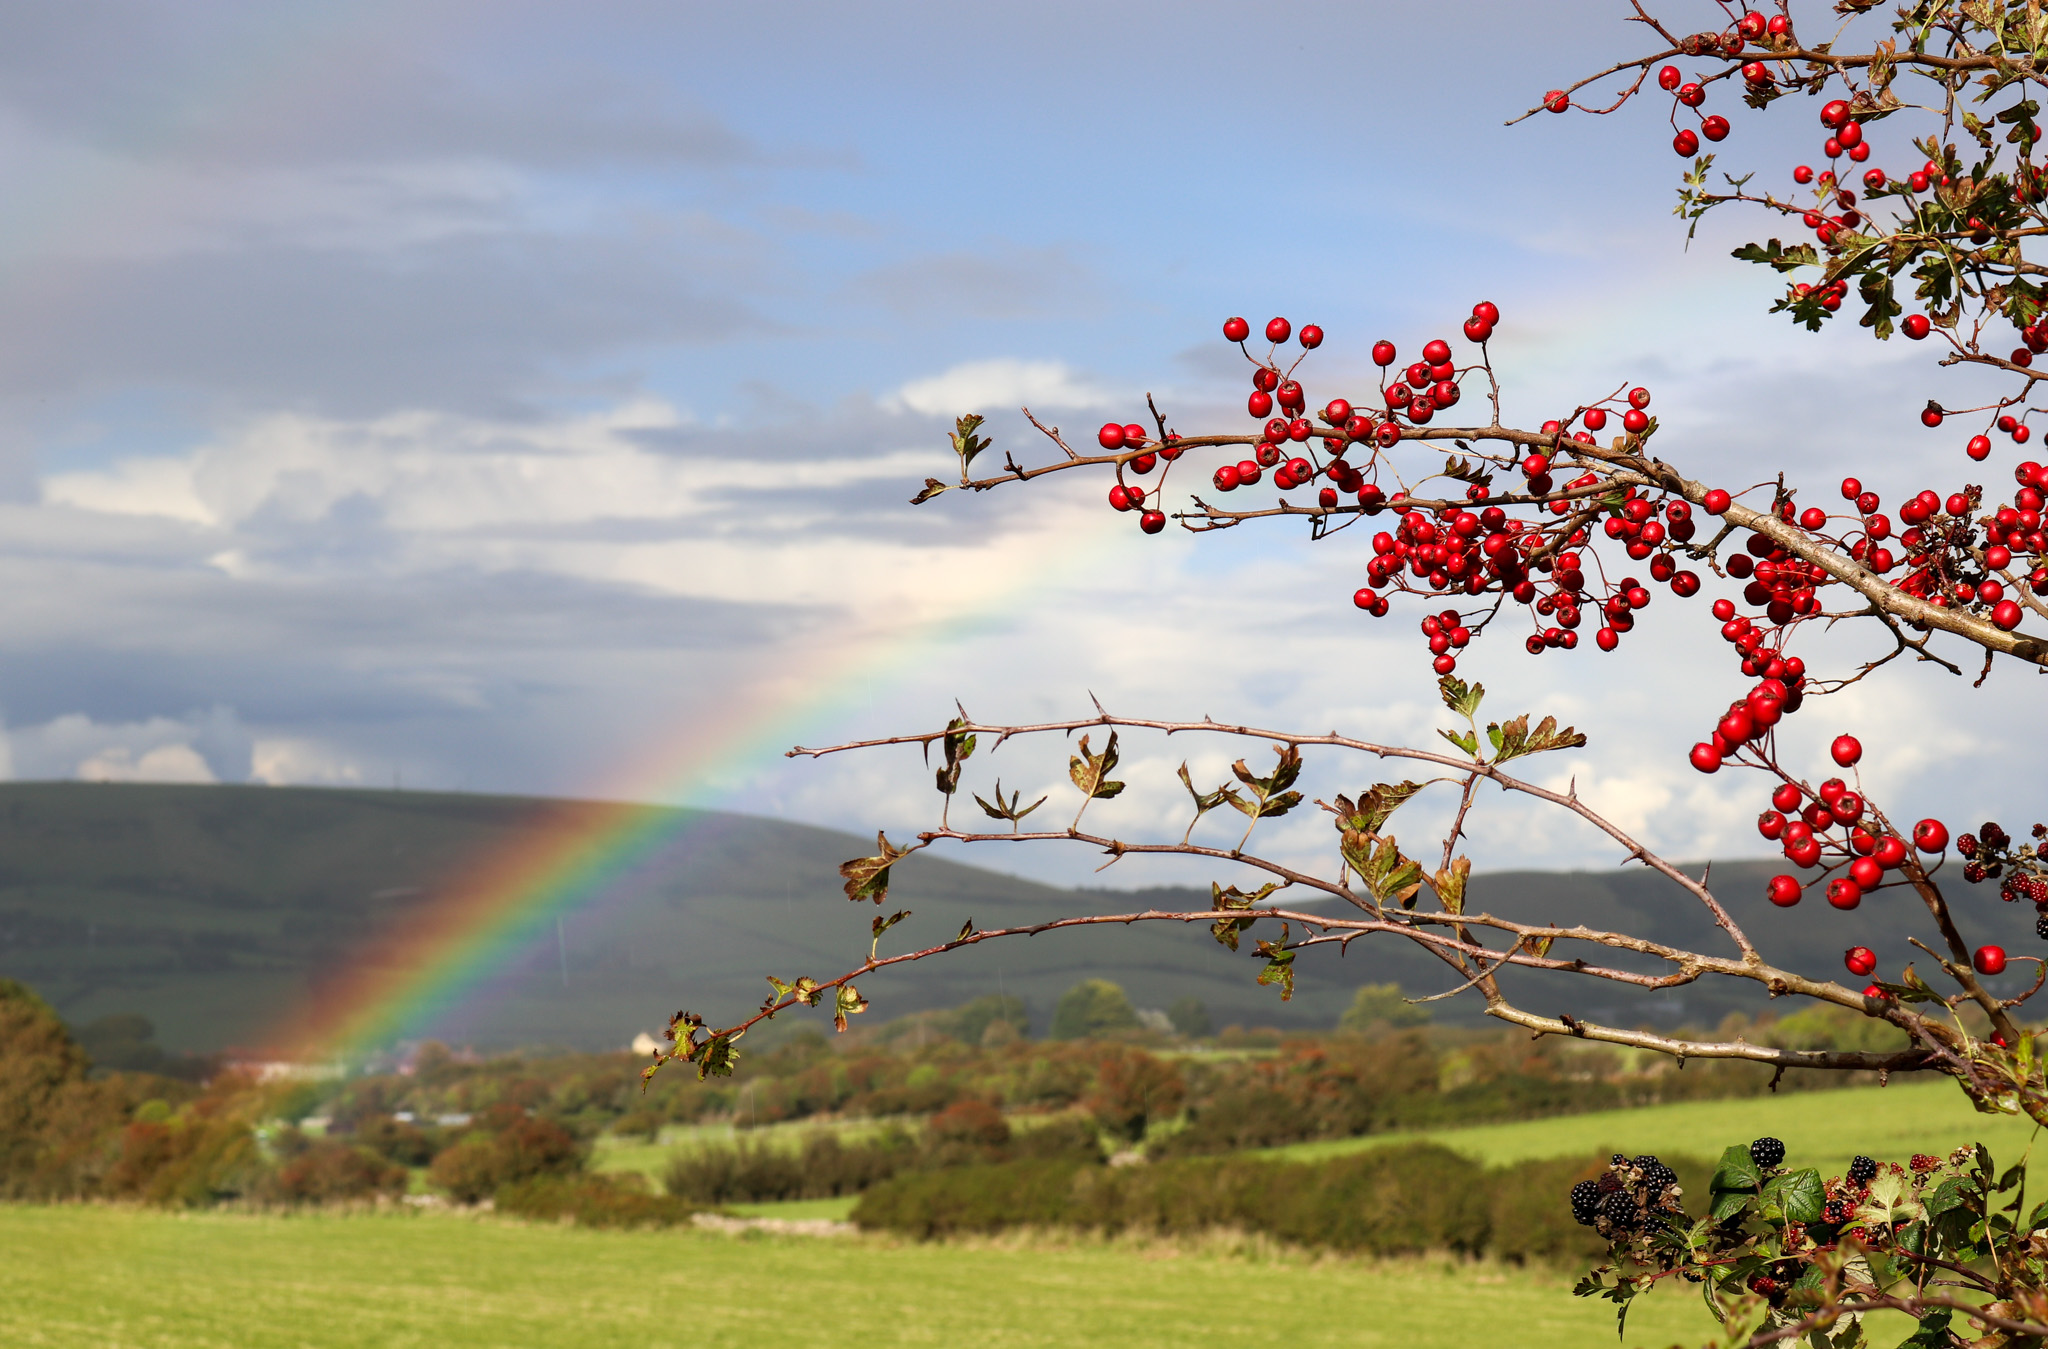 Rainbow and berries on the Purbeck Hills